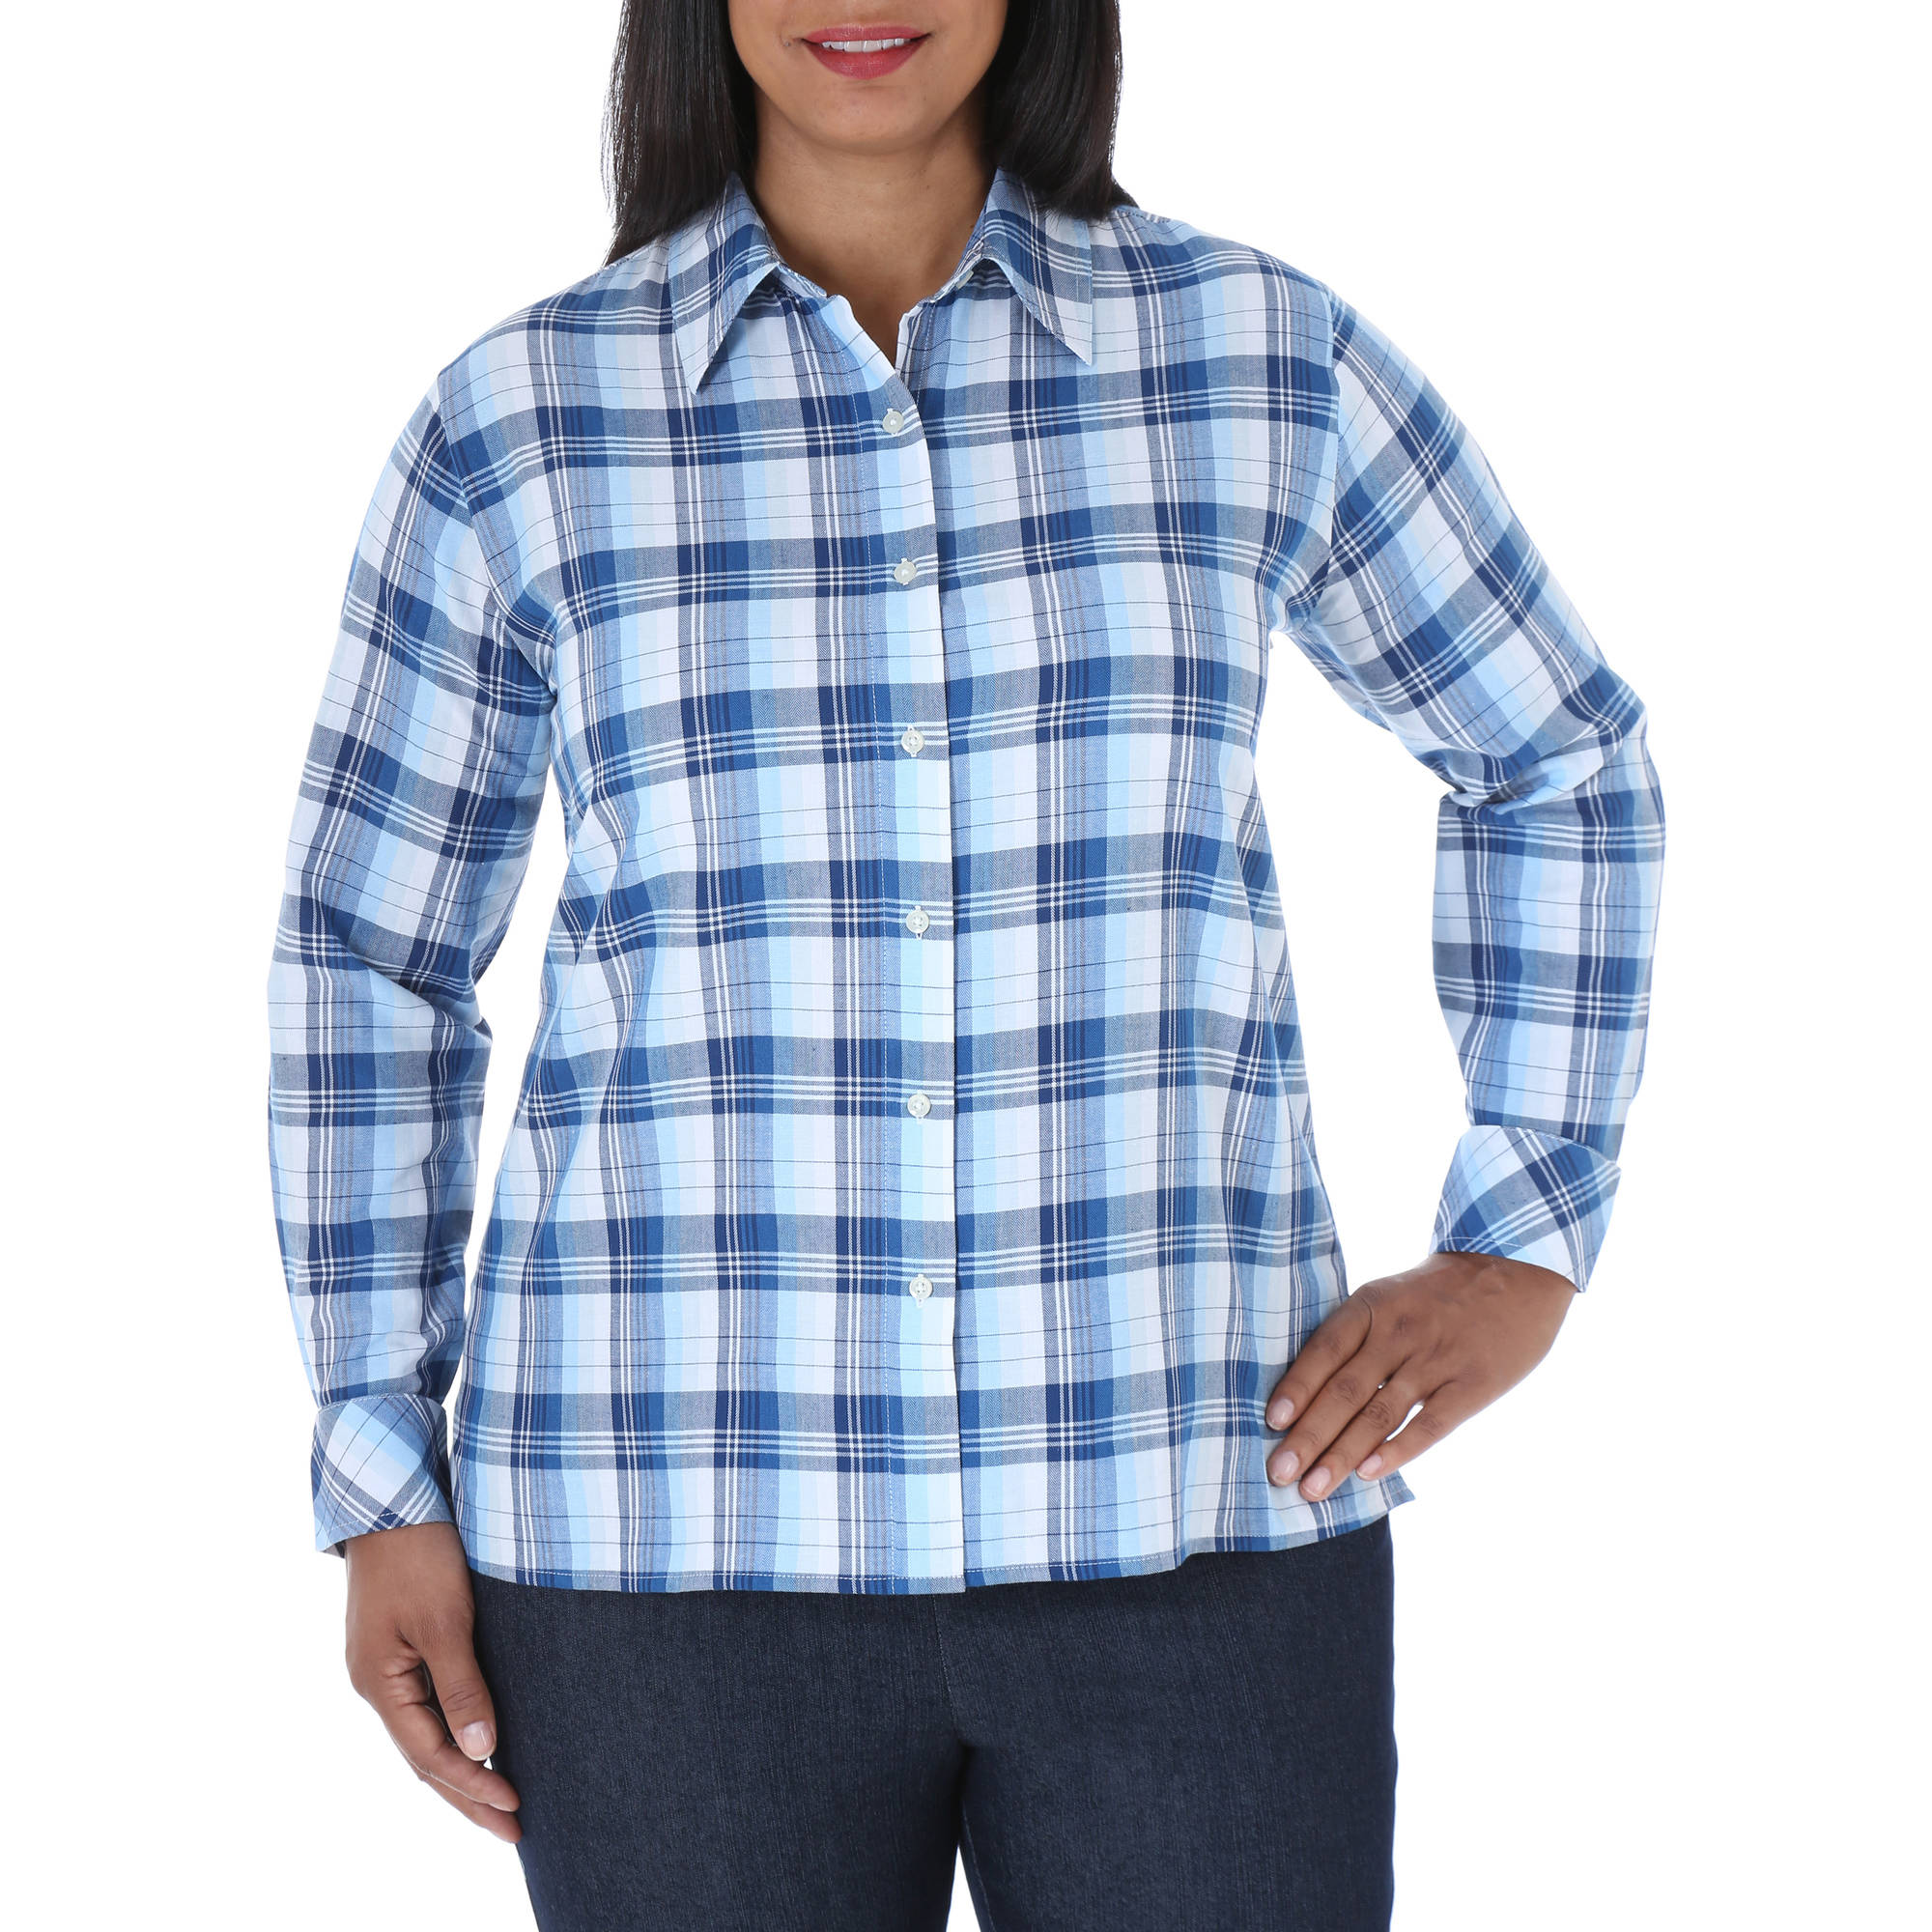 Chic Women's Plus-Size Comfort Collection Plaid Shirt